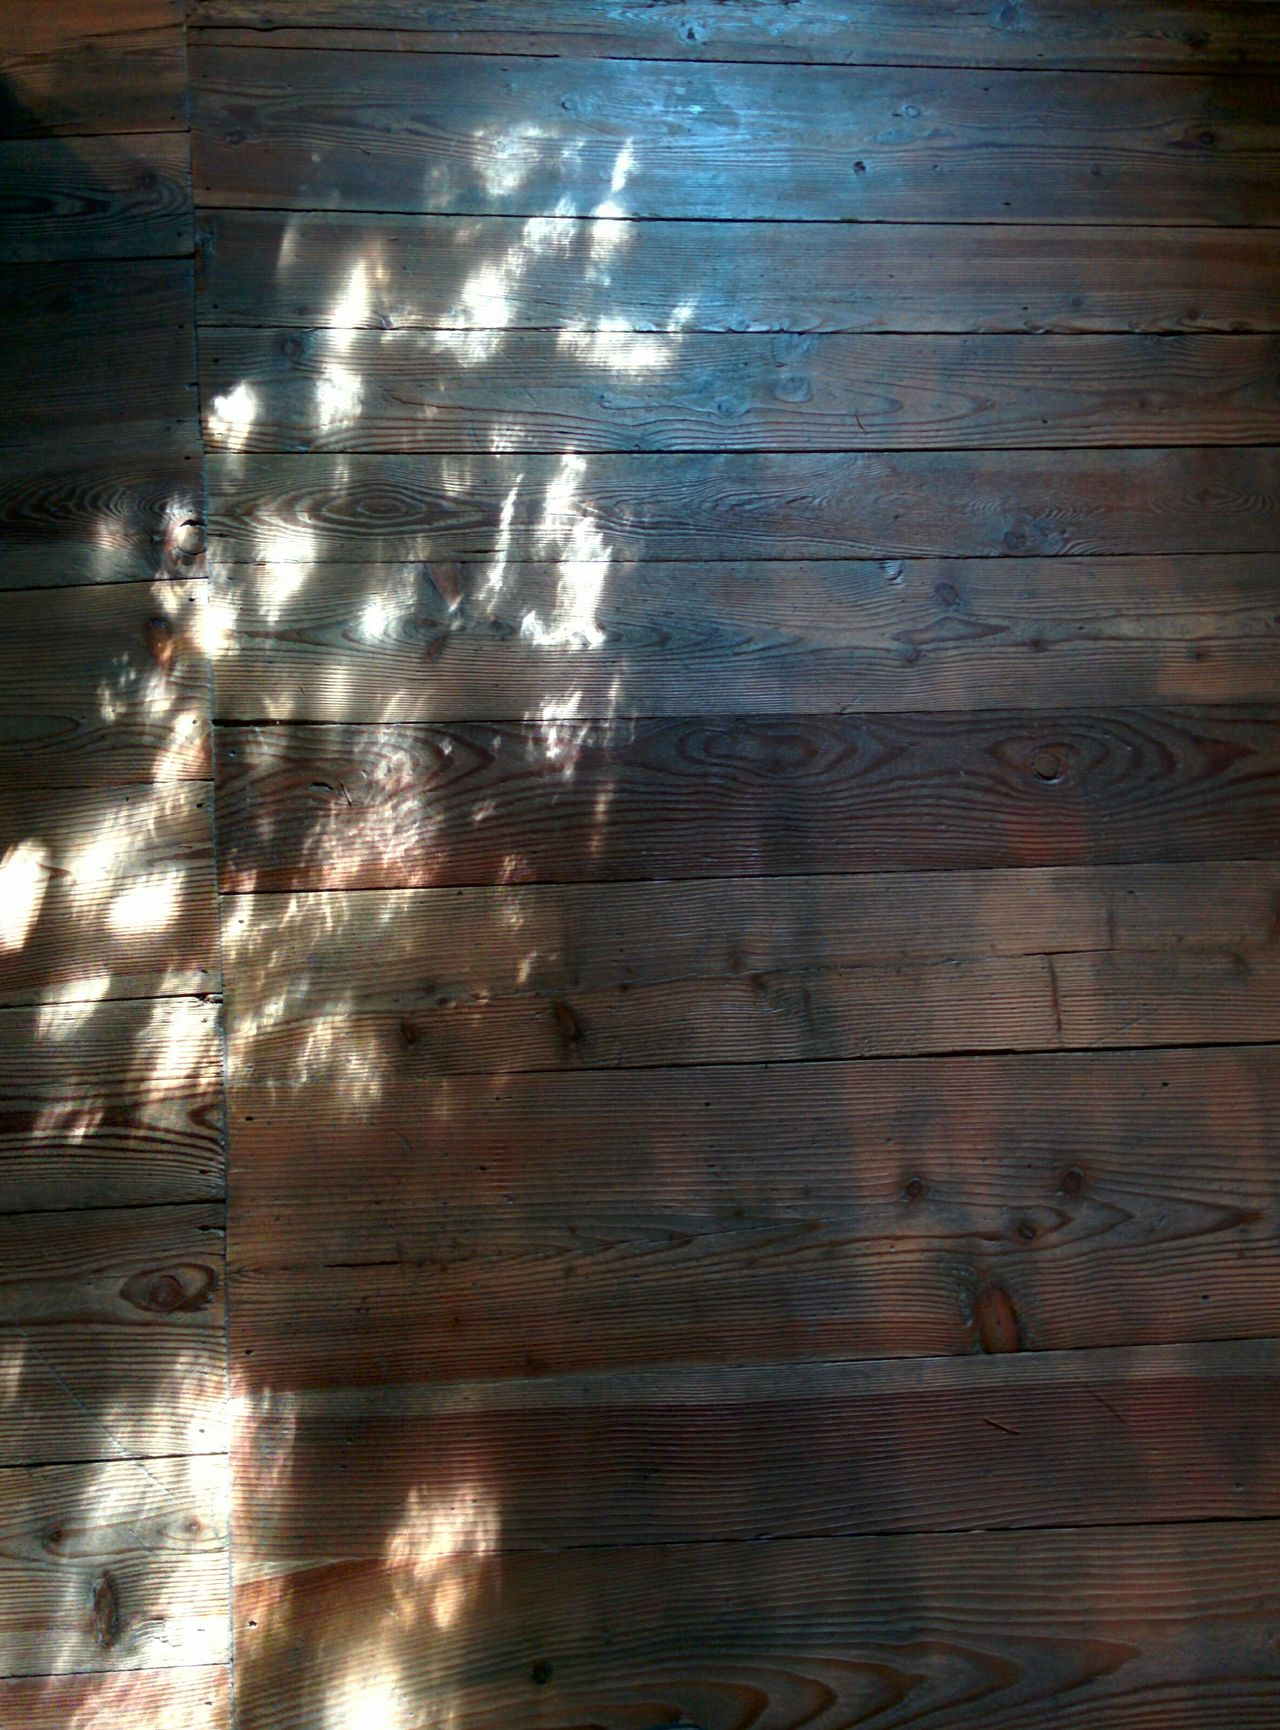 Introd Castellodintrod Reflections the sun on the parquet